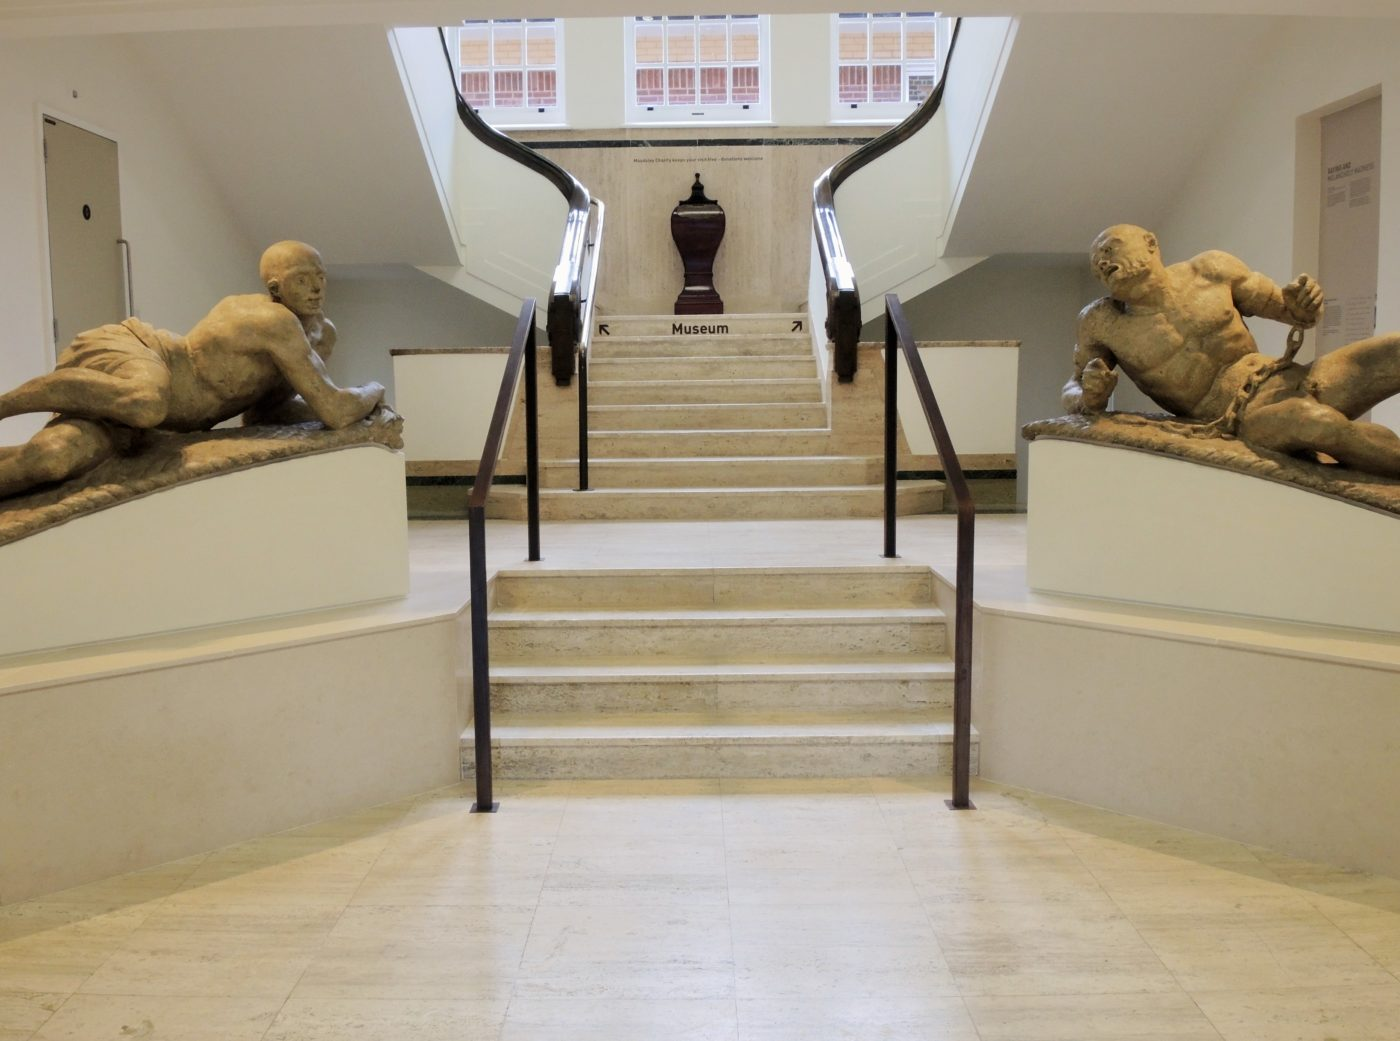 Sculptures Raving and Melancholy at the entrance to Bethlem Museum of the Mind